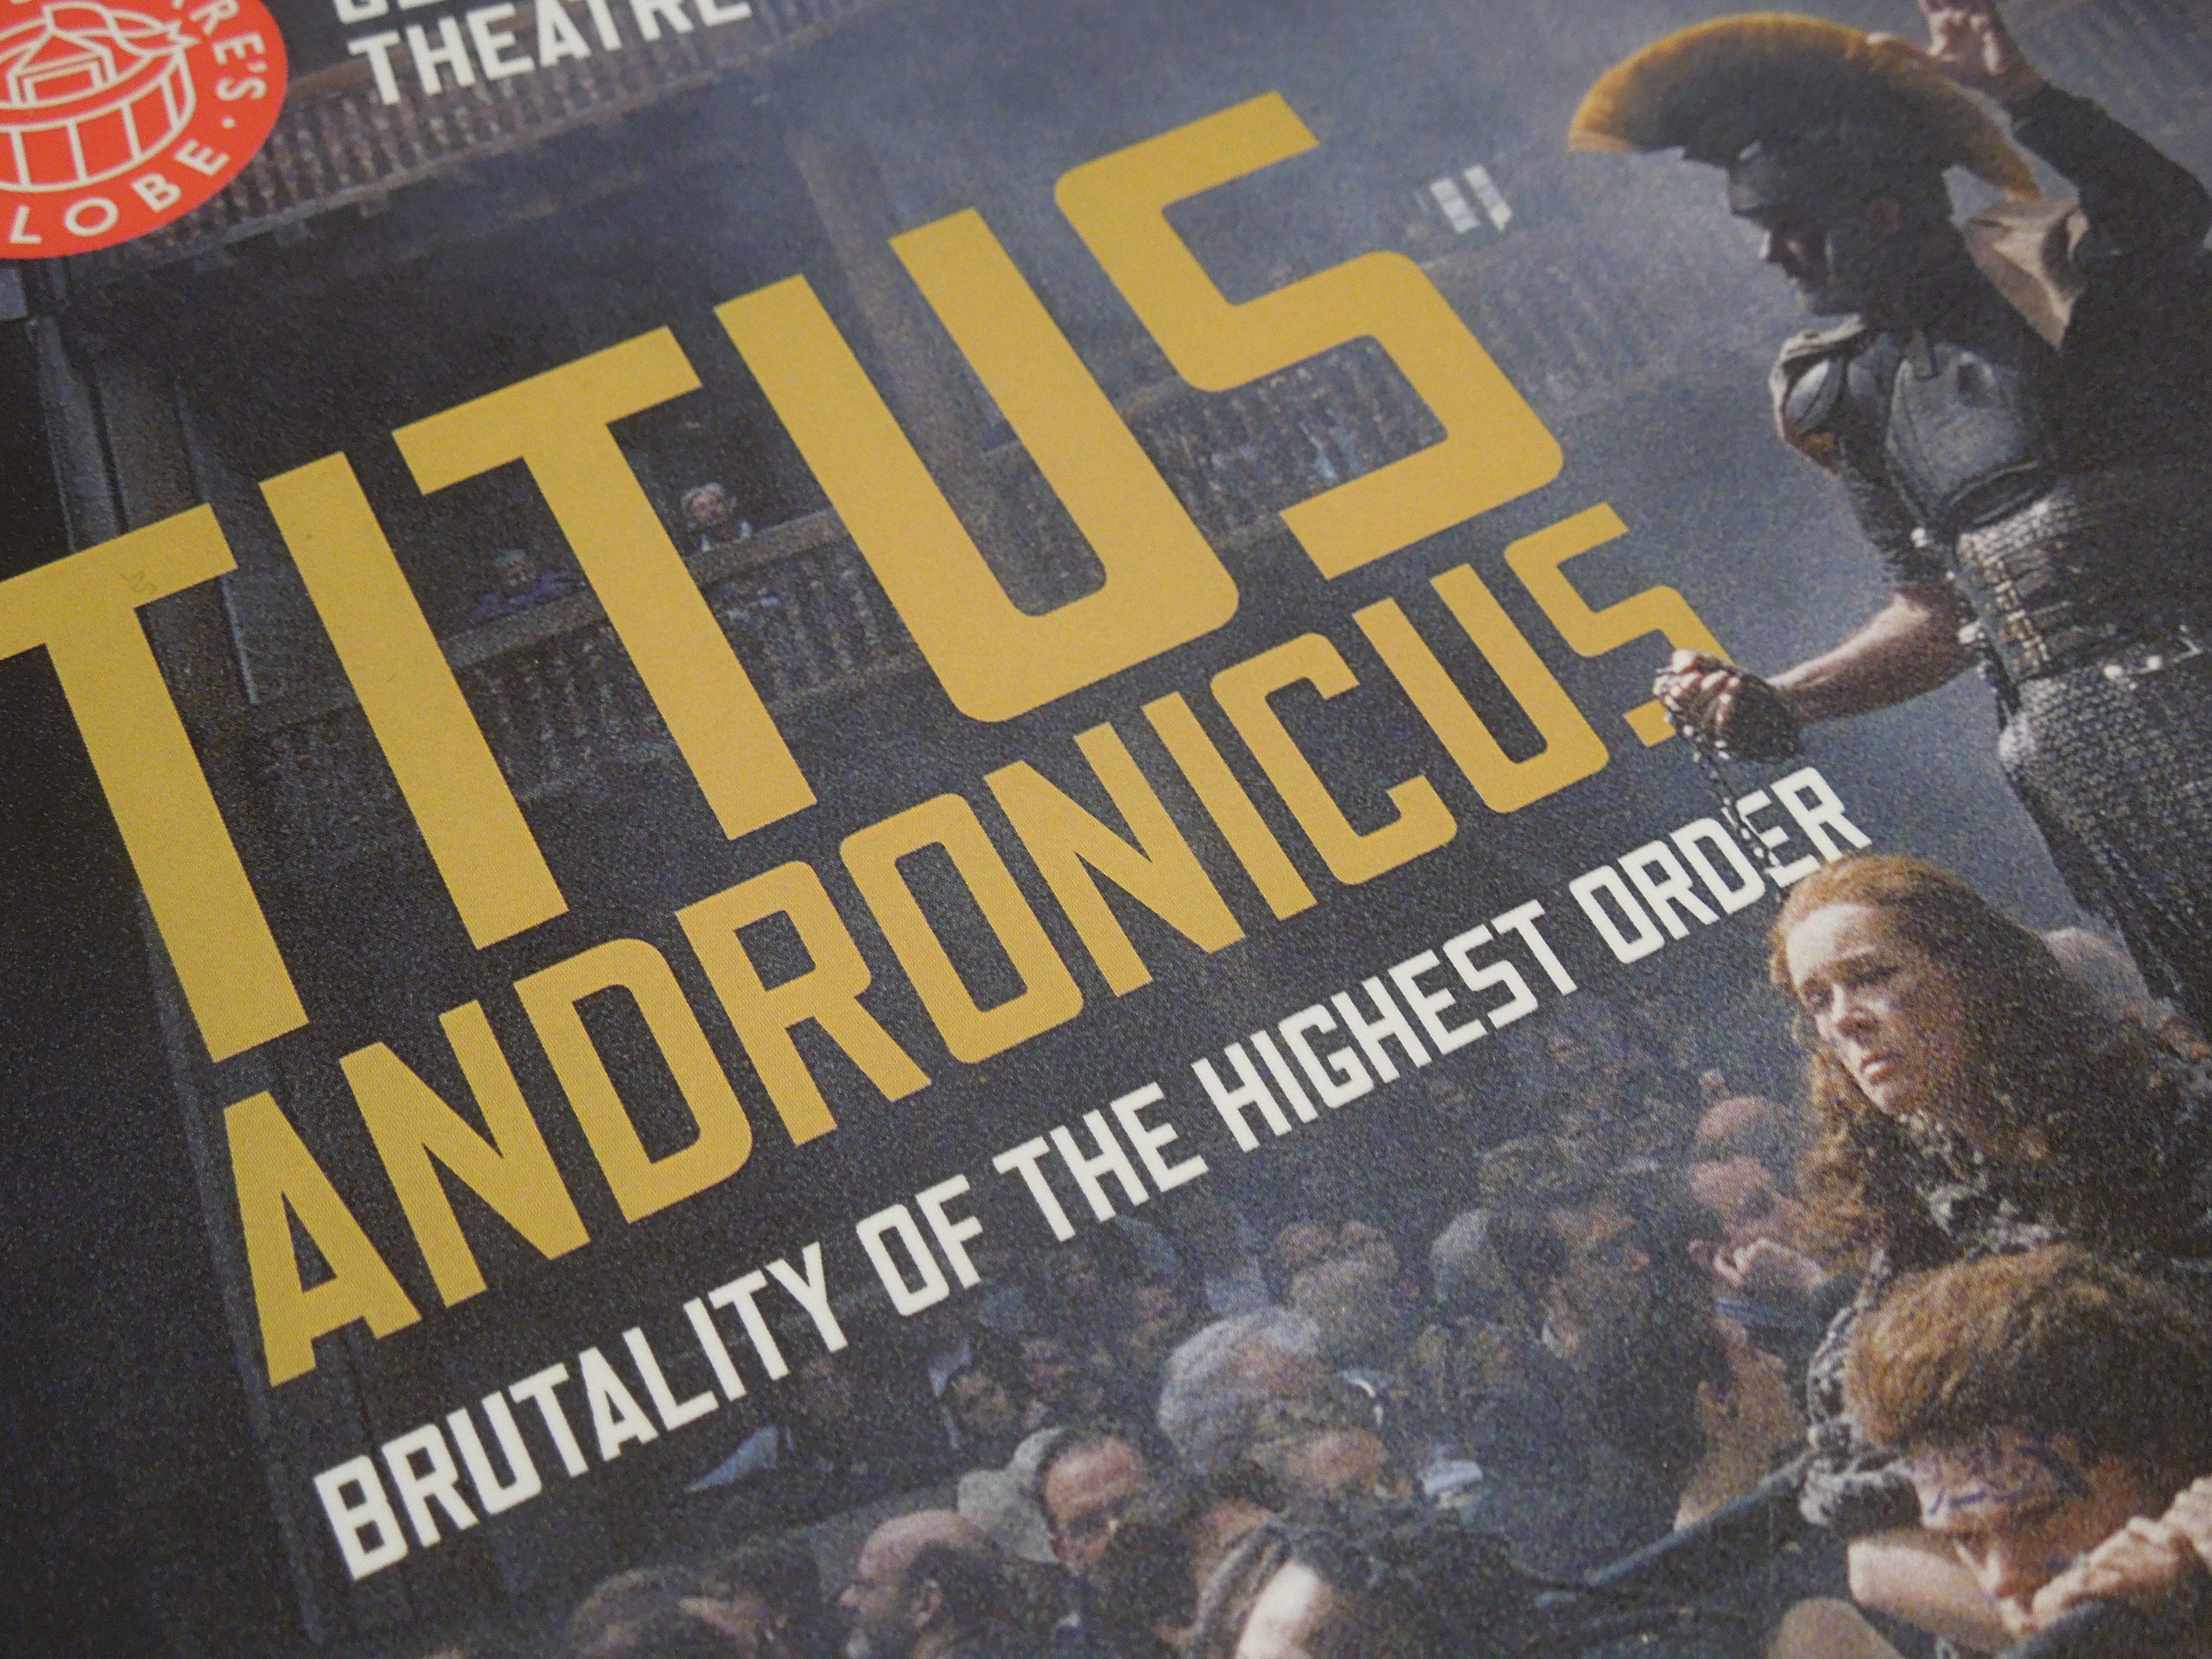 titus andronicus essay This essay focuses on the characters's awareness of roman cultural traditions in  shakespeare's titus andronicus, especially the dual foundation stories for.